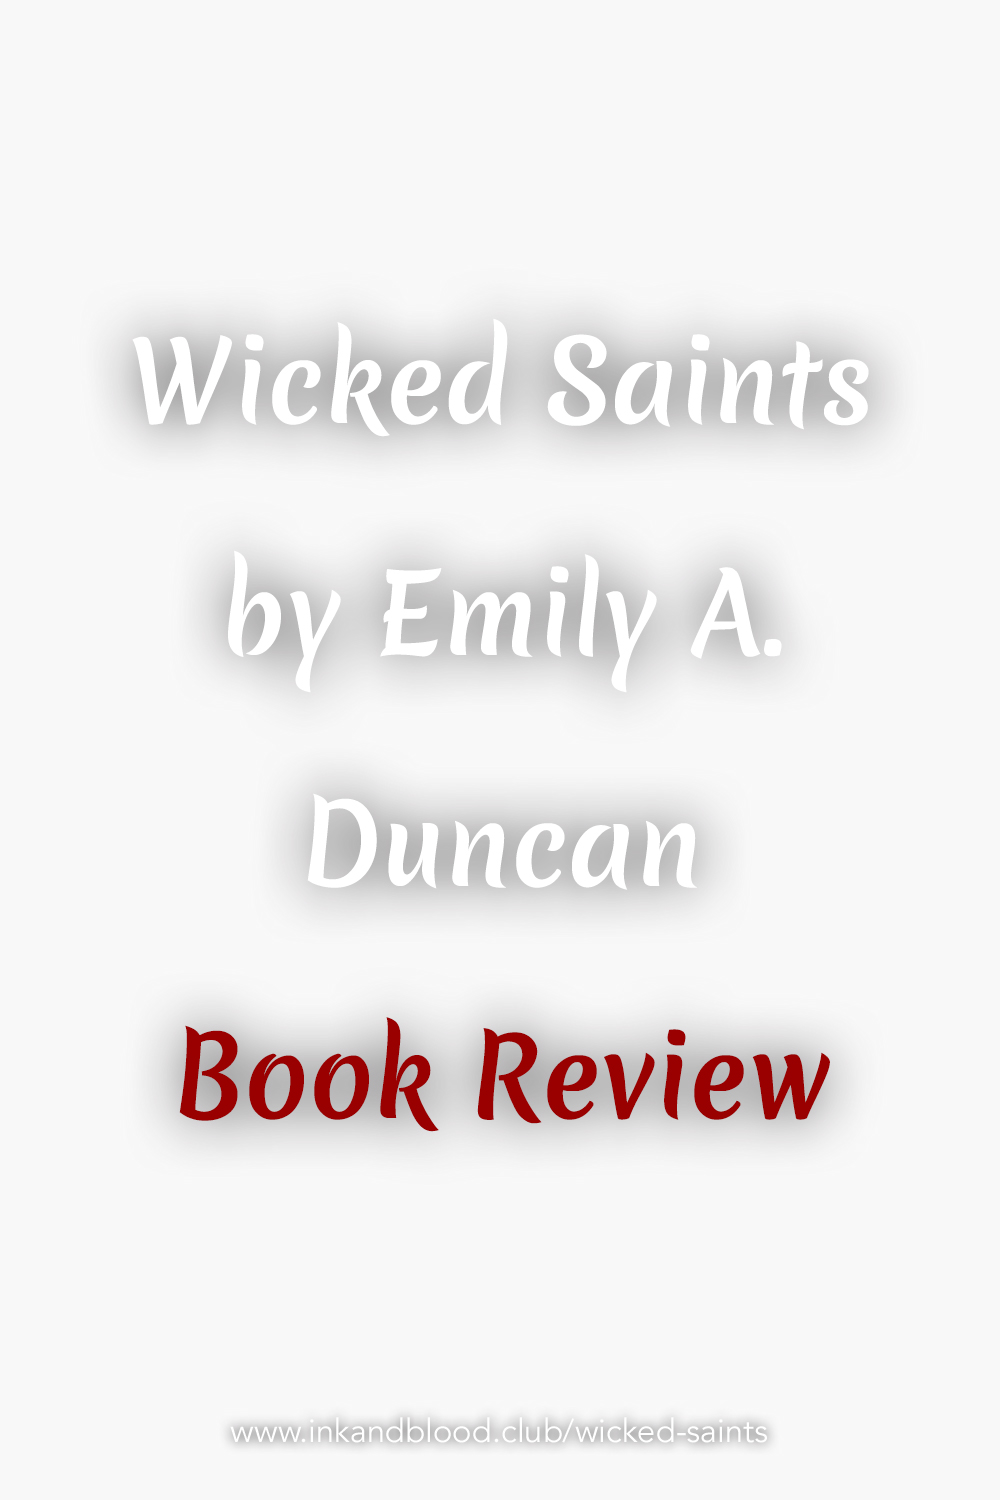 Book review for the gorgeously written Wicked Saints by Emily A. Duncan #fantasy #fiction #bookstagram Image is a white background with smoky letters that say Wicked Saints by Emily A. Duncan and the words Book Review in red.